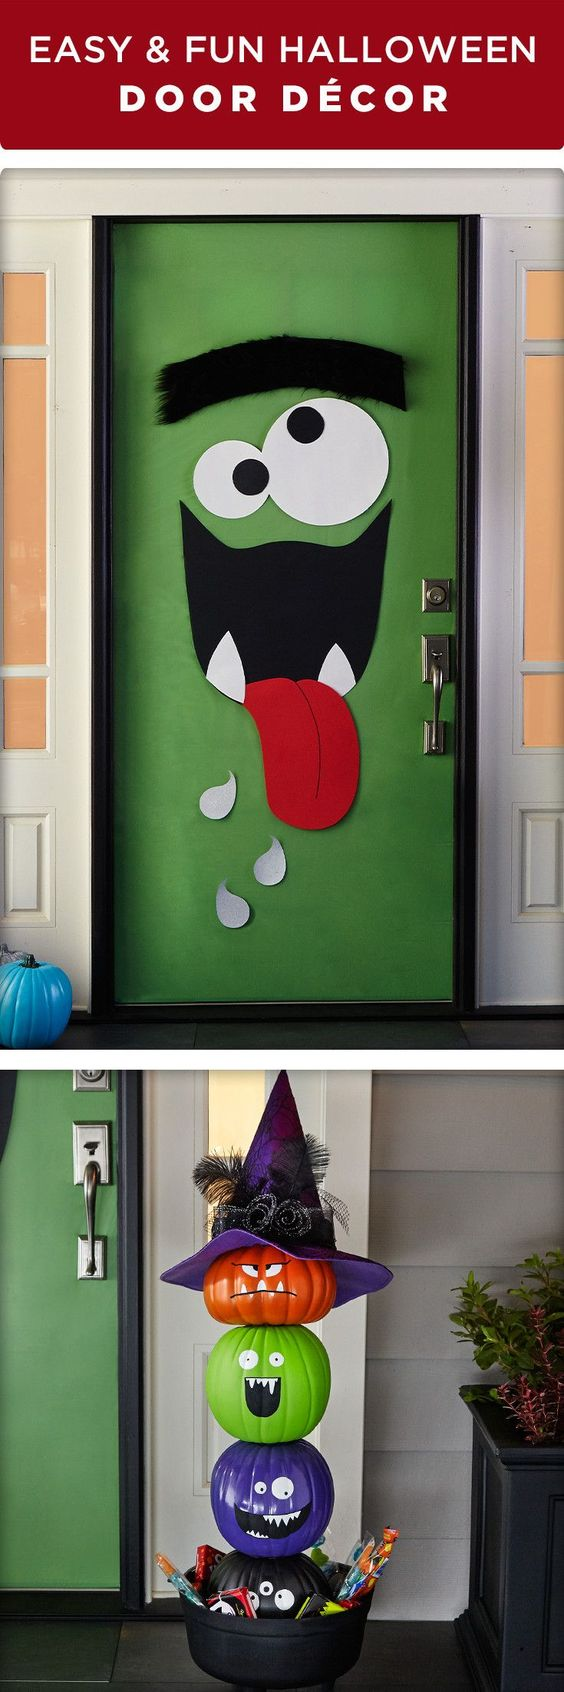 Decorate your front door for trick or treaters this